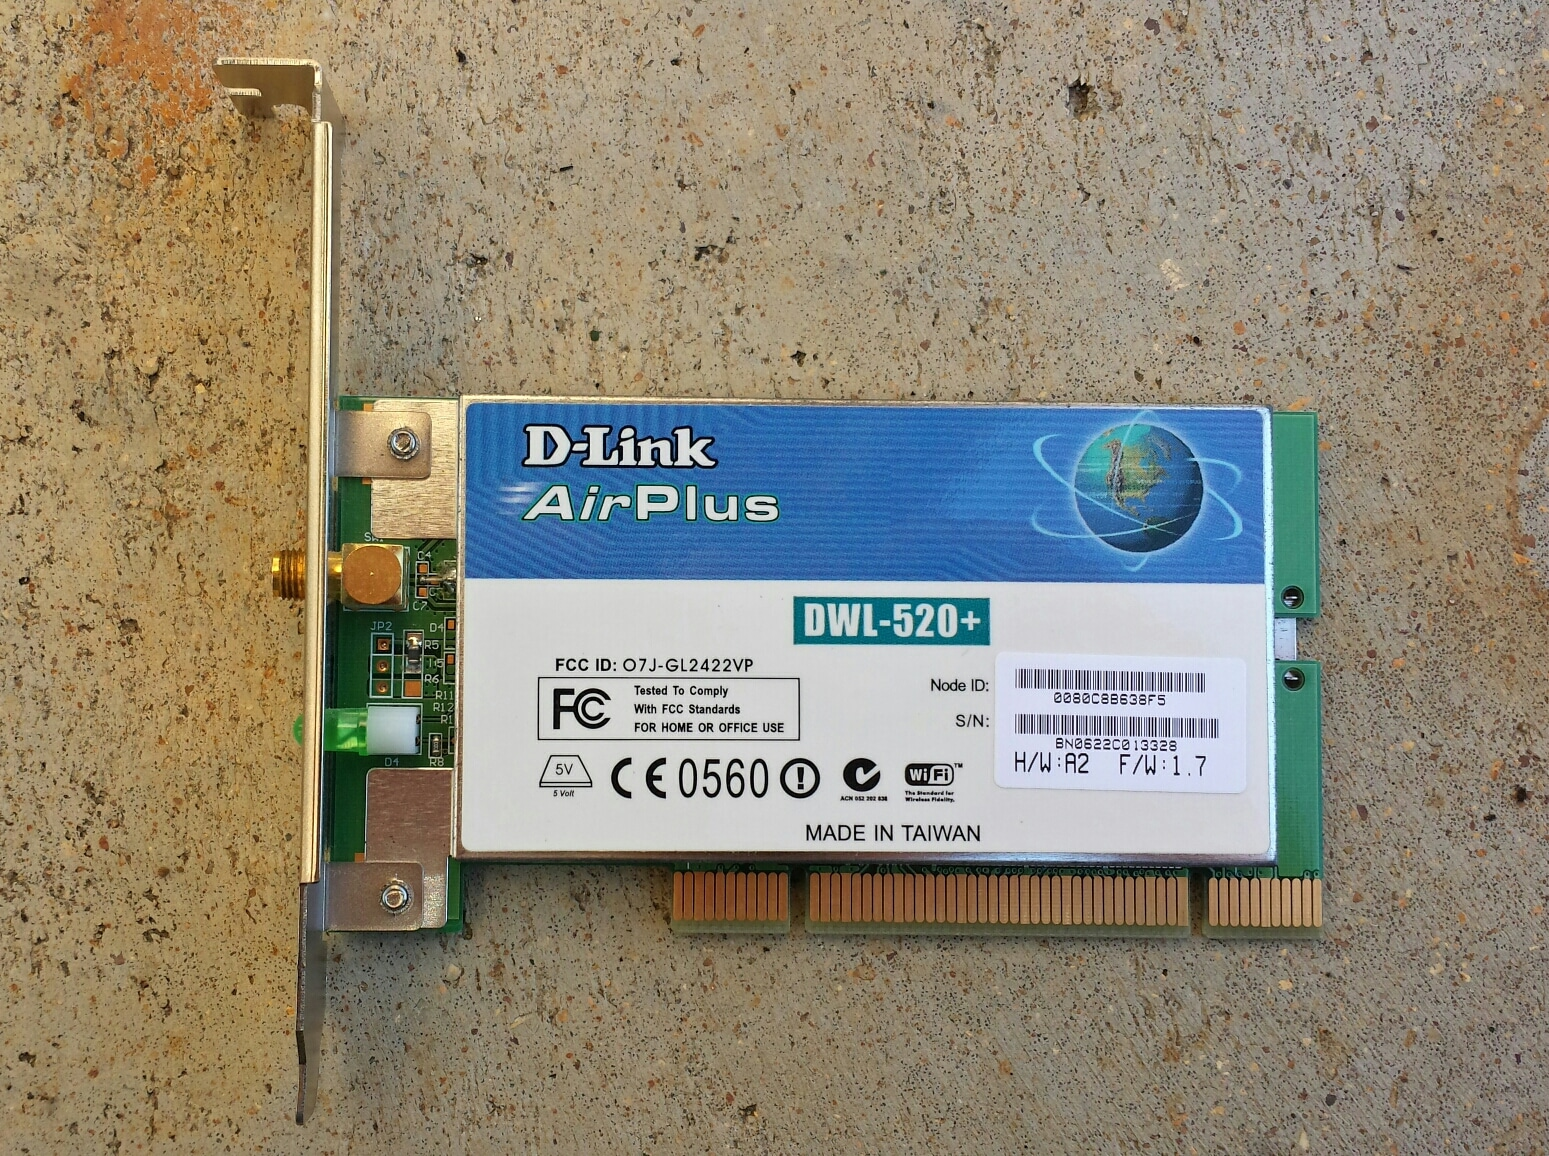 D-LINK AIRPLUS DWL-520 WIRELESS DRIVERS FOR WINDOWS XP